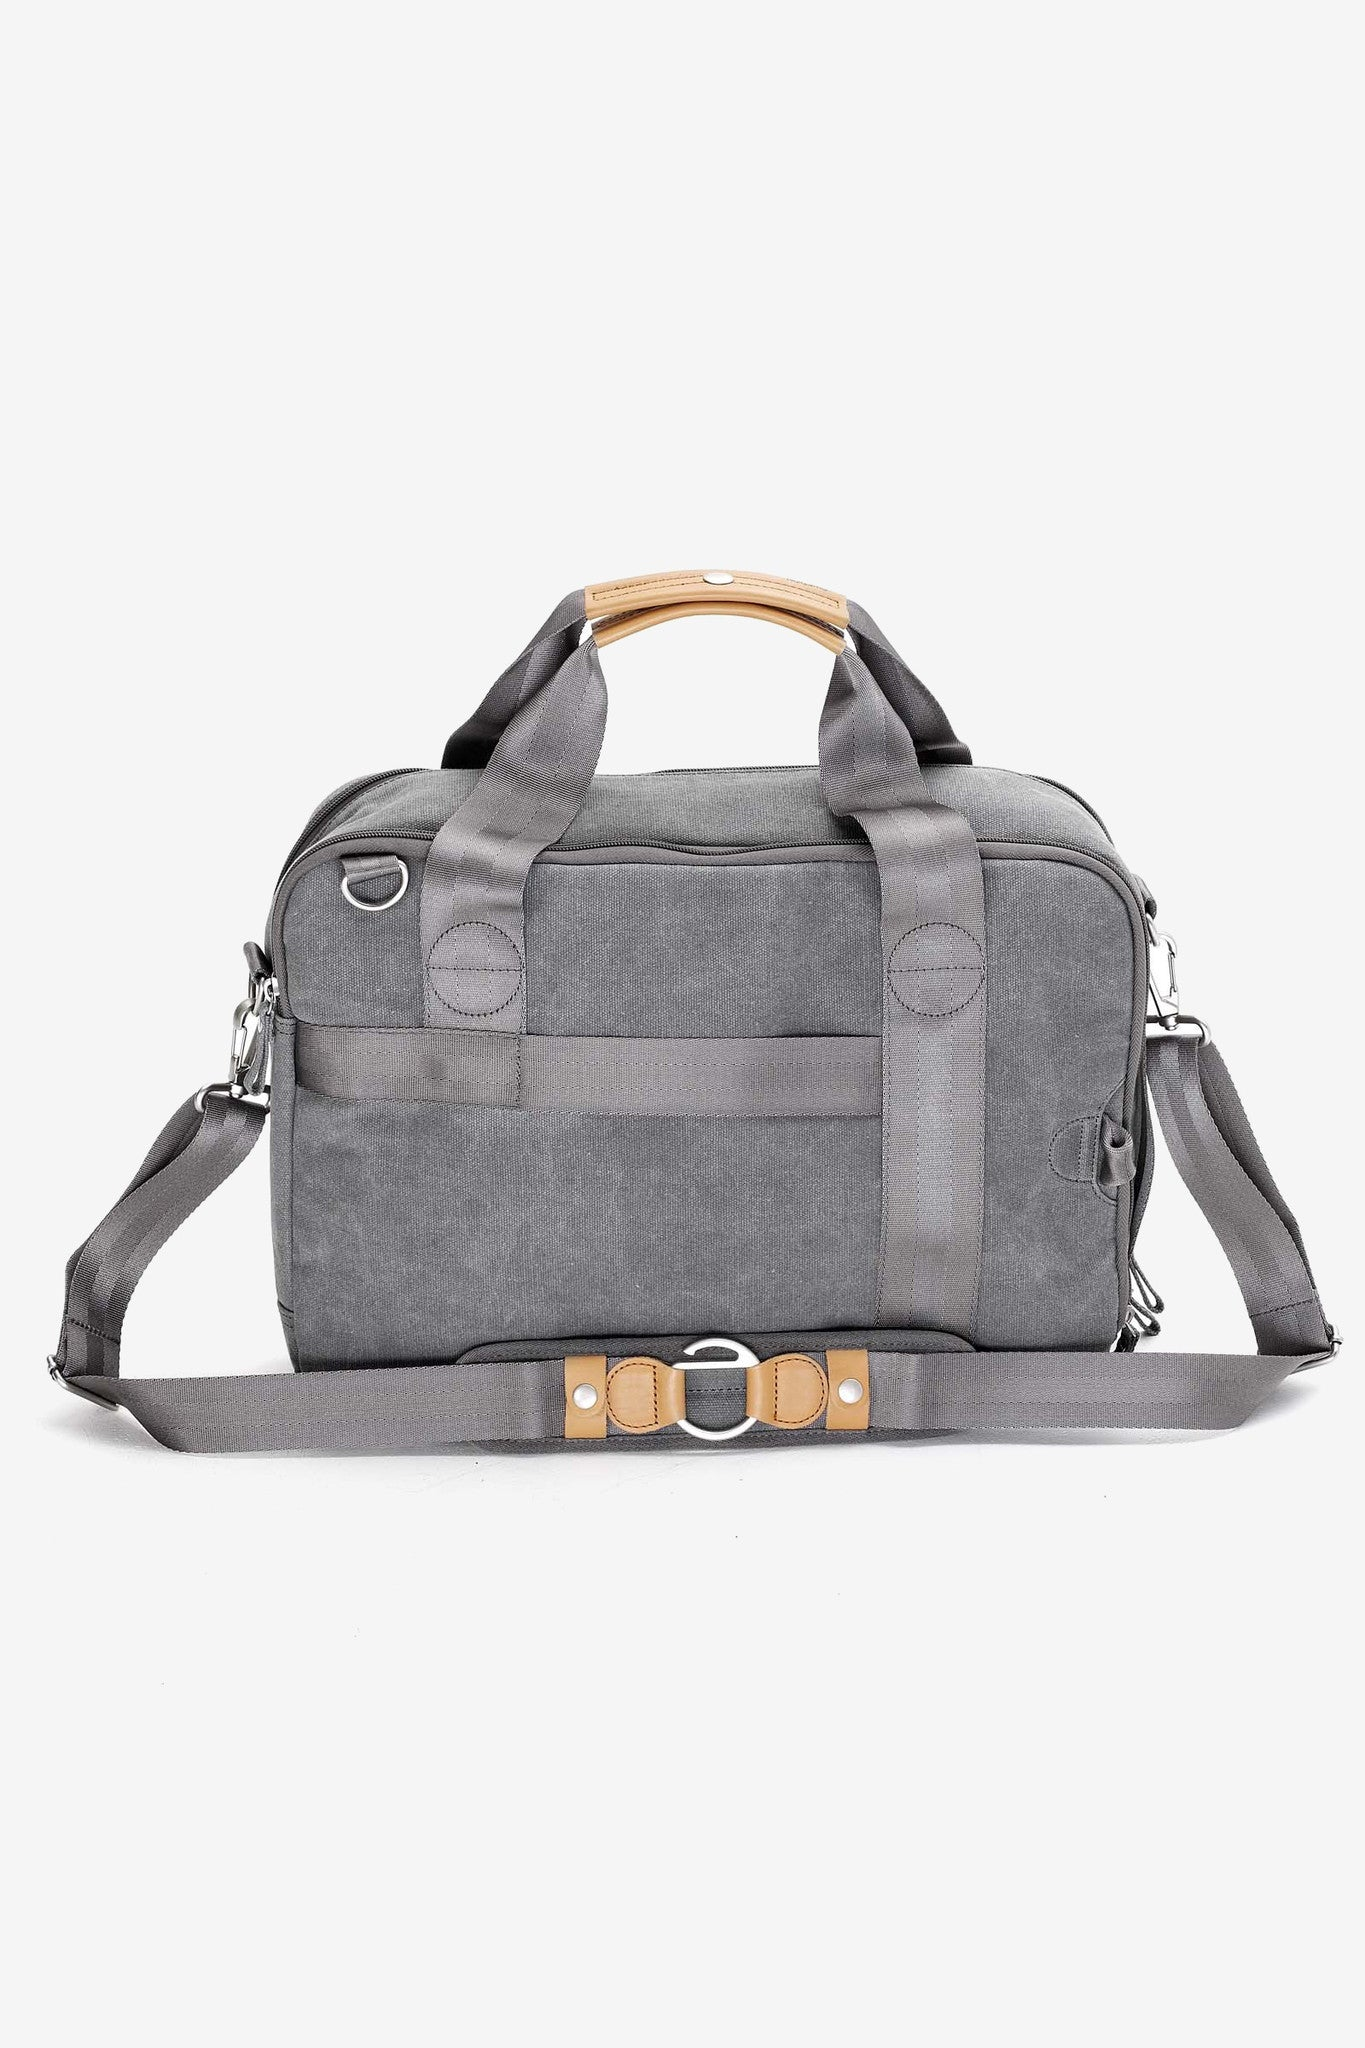 Office Bag Washed Grey, Bags, QWSTION - Six and Sons